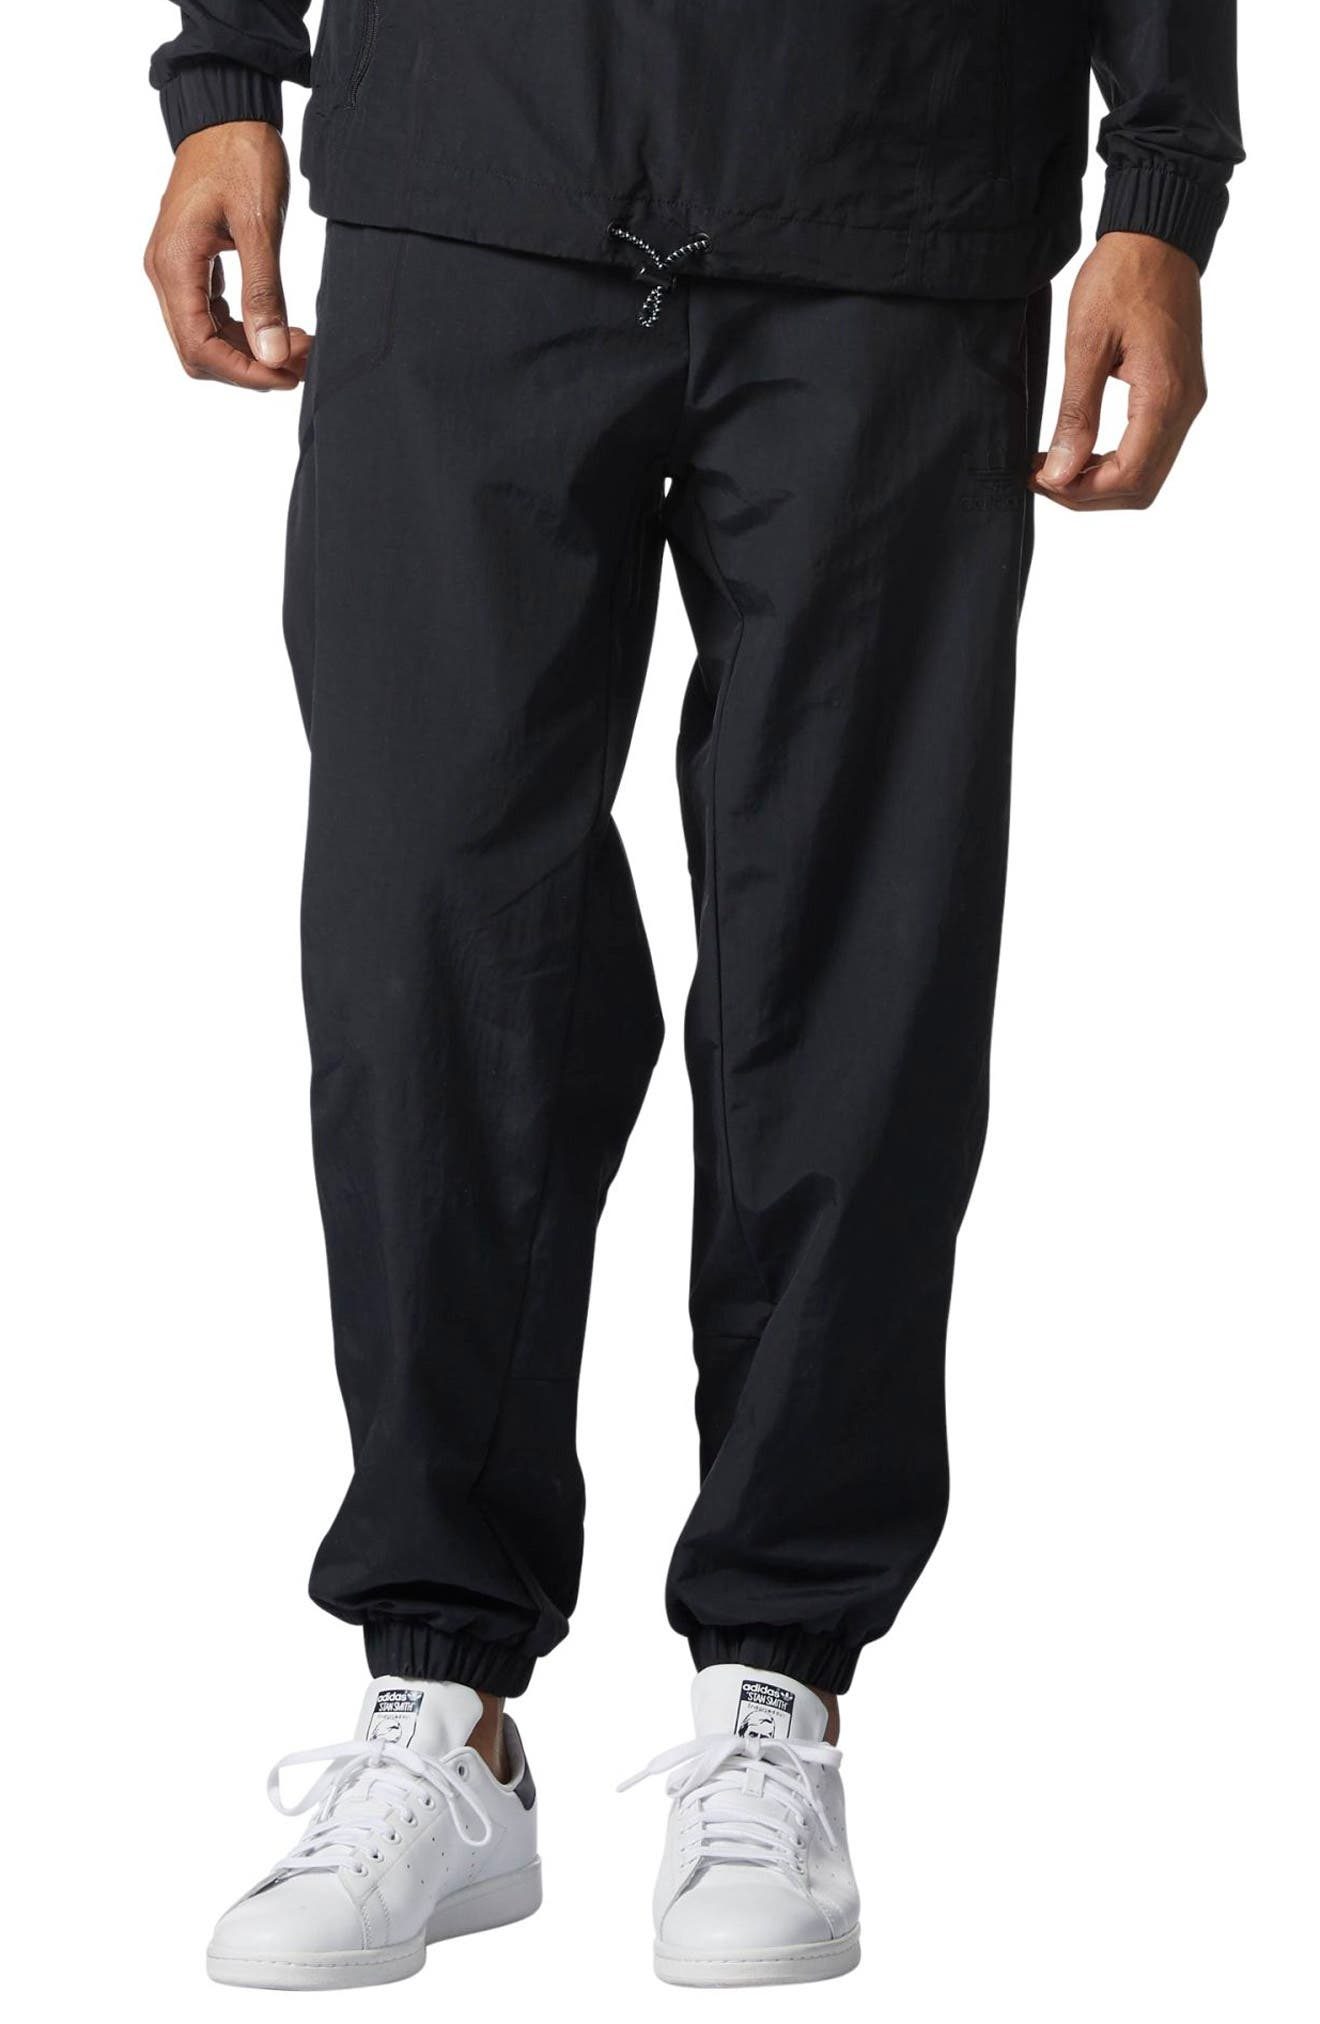 Originals Taped Wind Pants,                         Main,                         color, Black